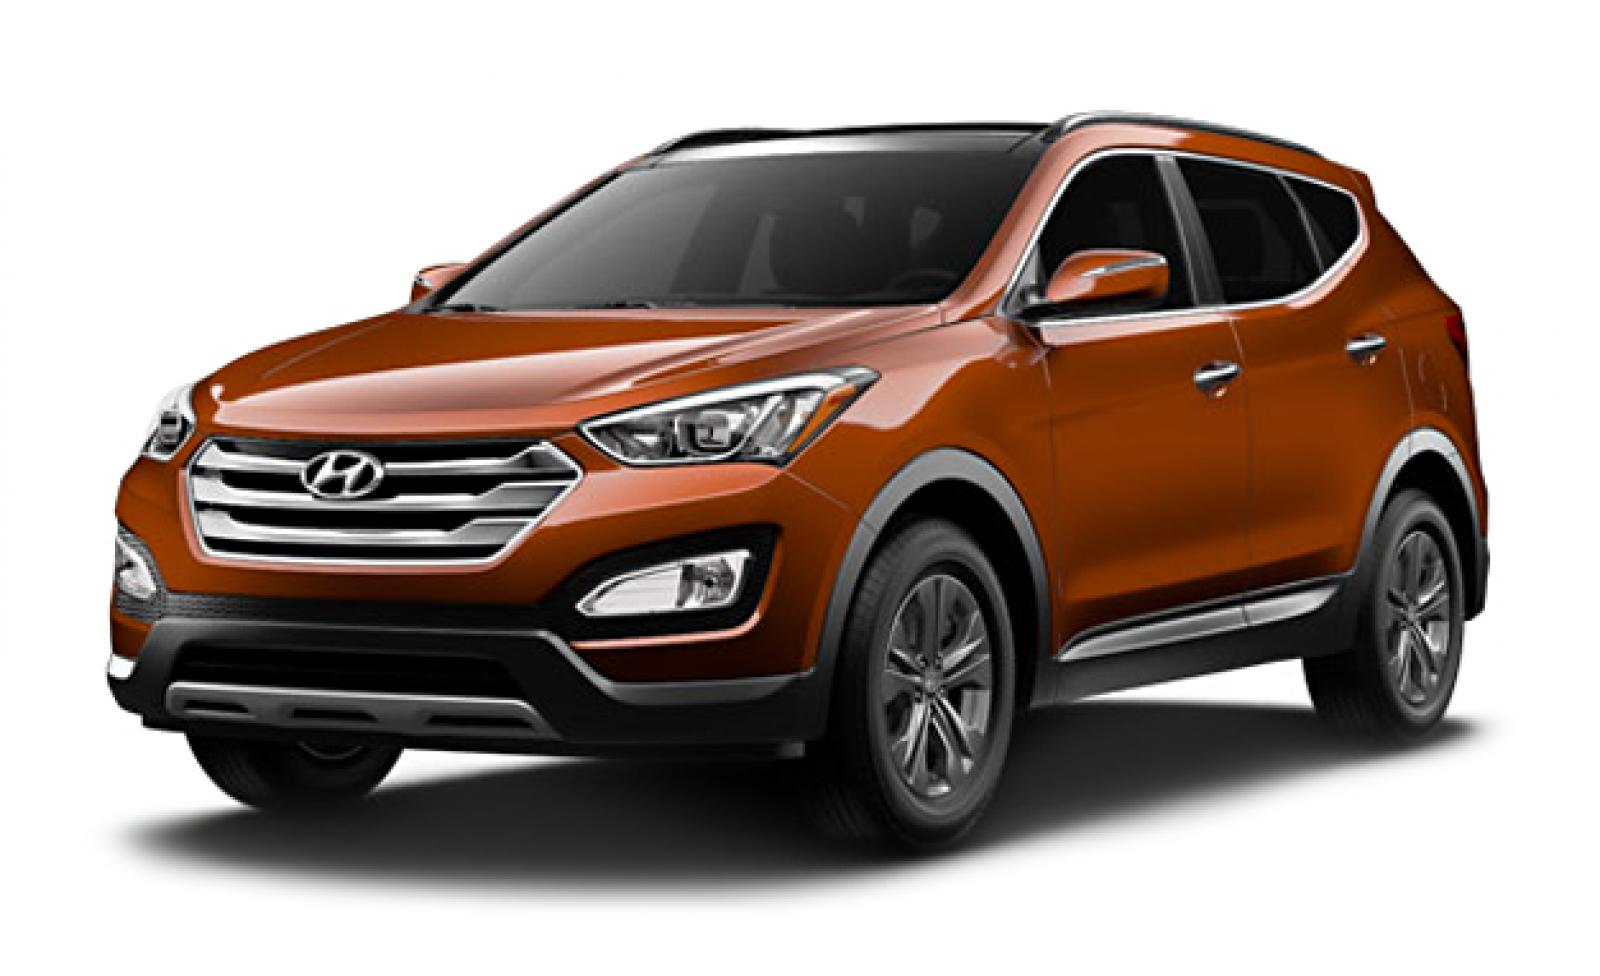 2015 hyundai santa fe sport information and photos. Black Bedroom Furniture Sets. Home Design Ideas